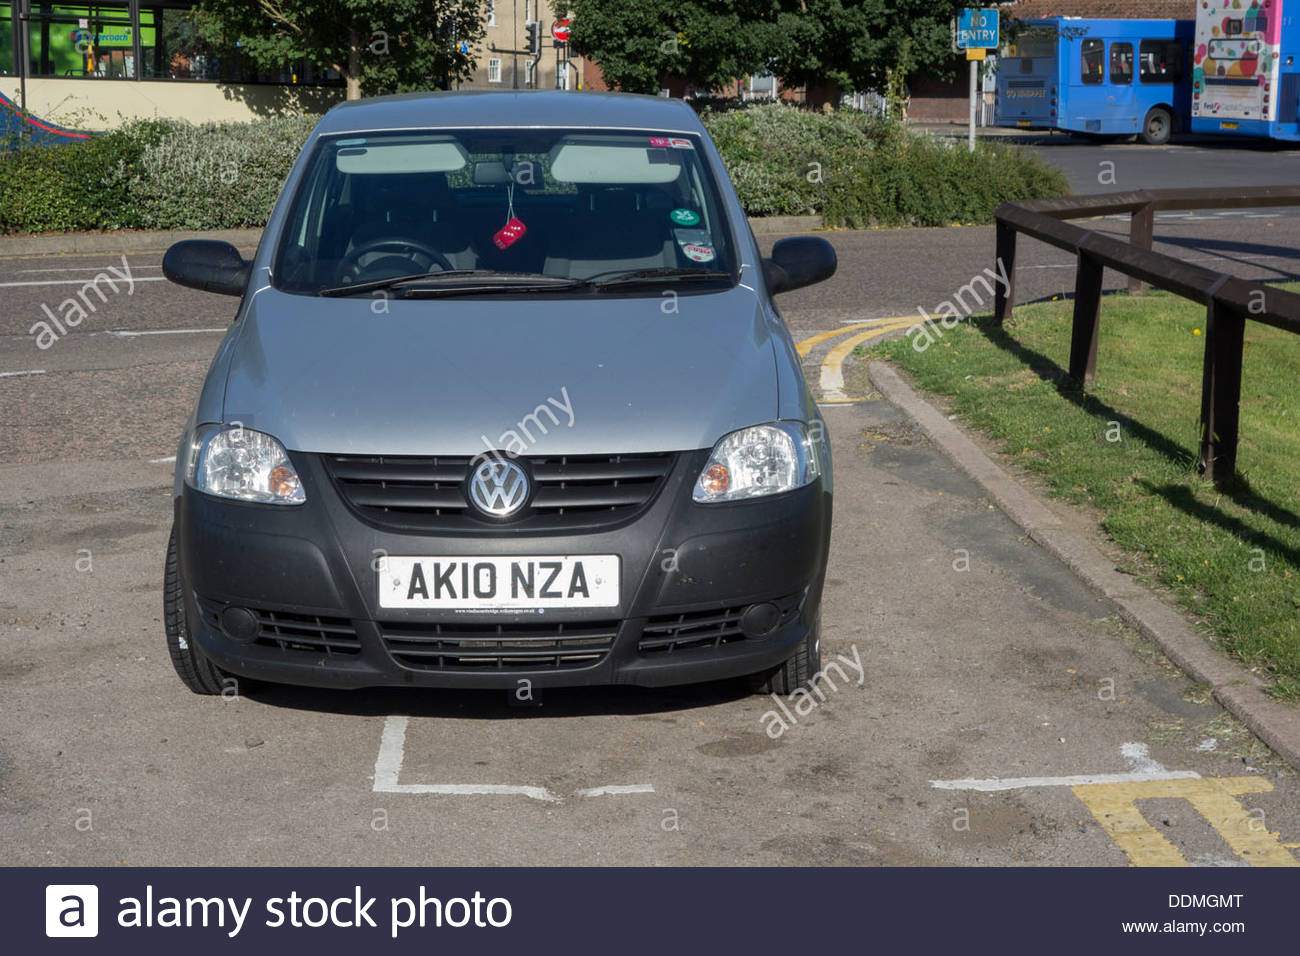 Car badly parked outside the parking bay - Stock Image